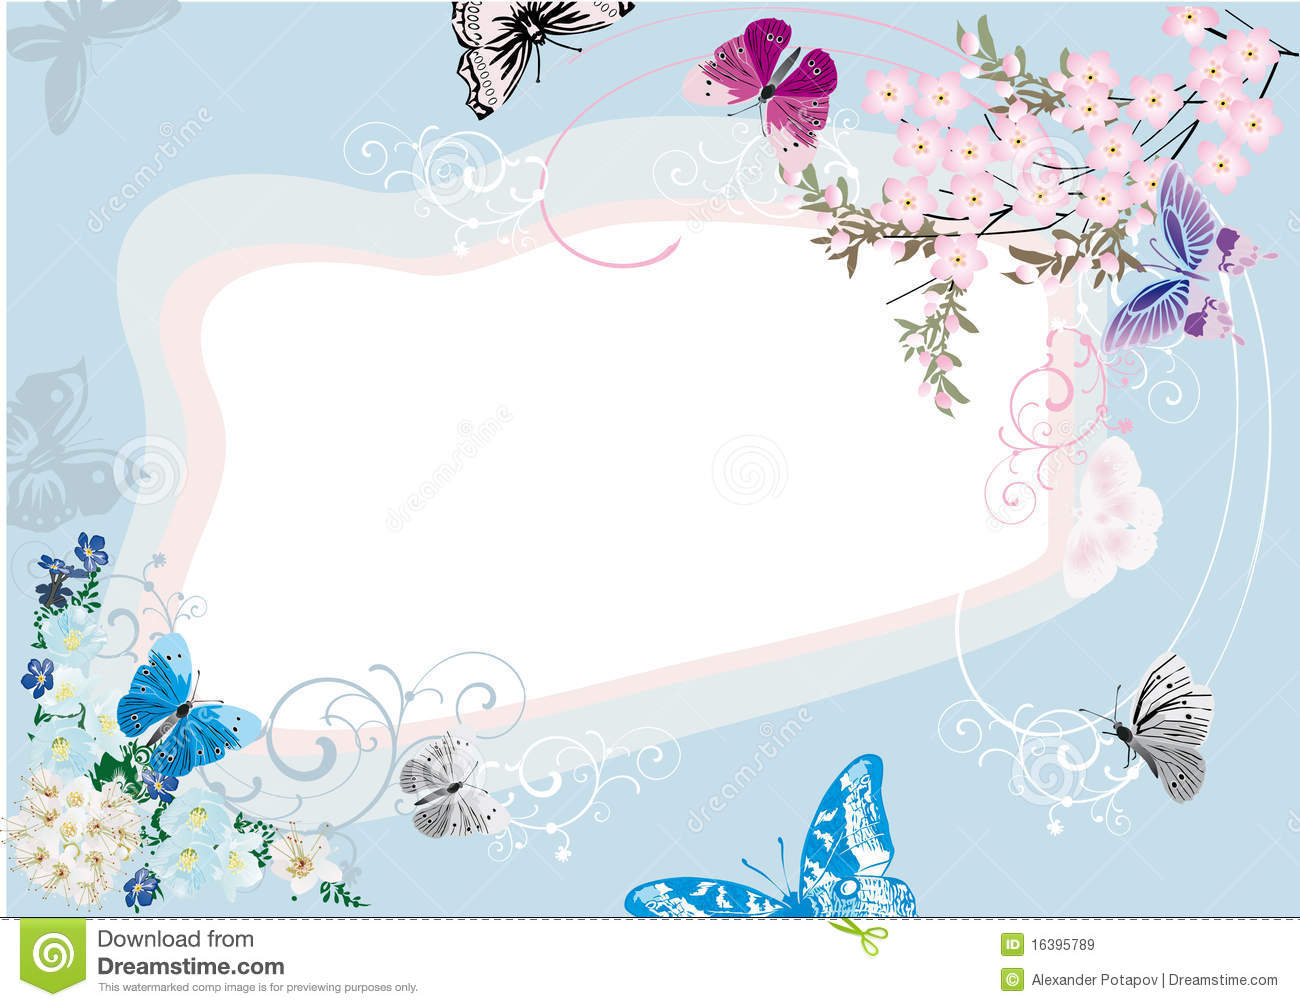 Blue Butterfly And Flower Frame Design Illustration 16395789 - Megapixl